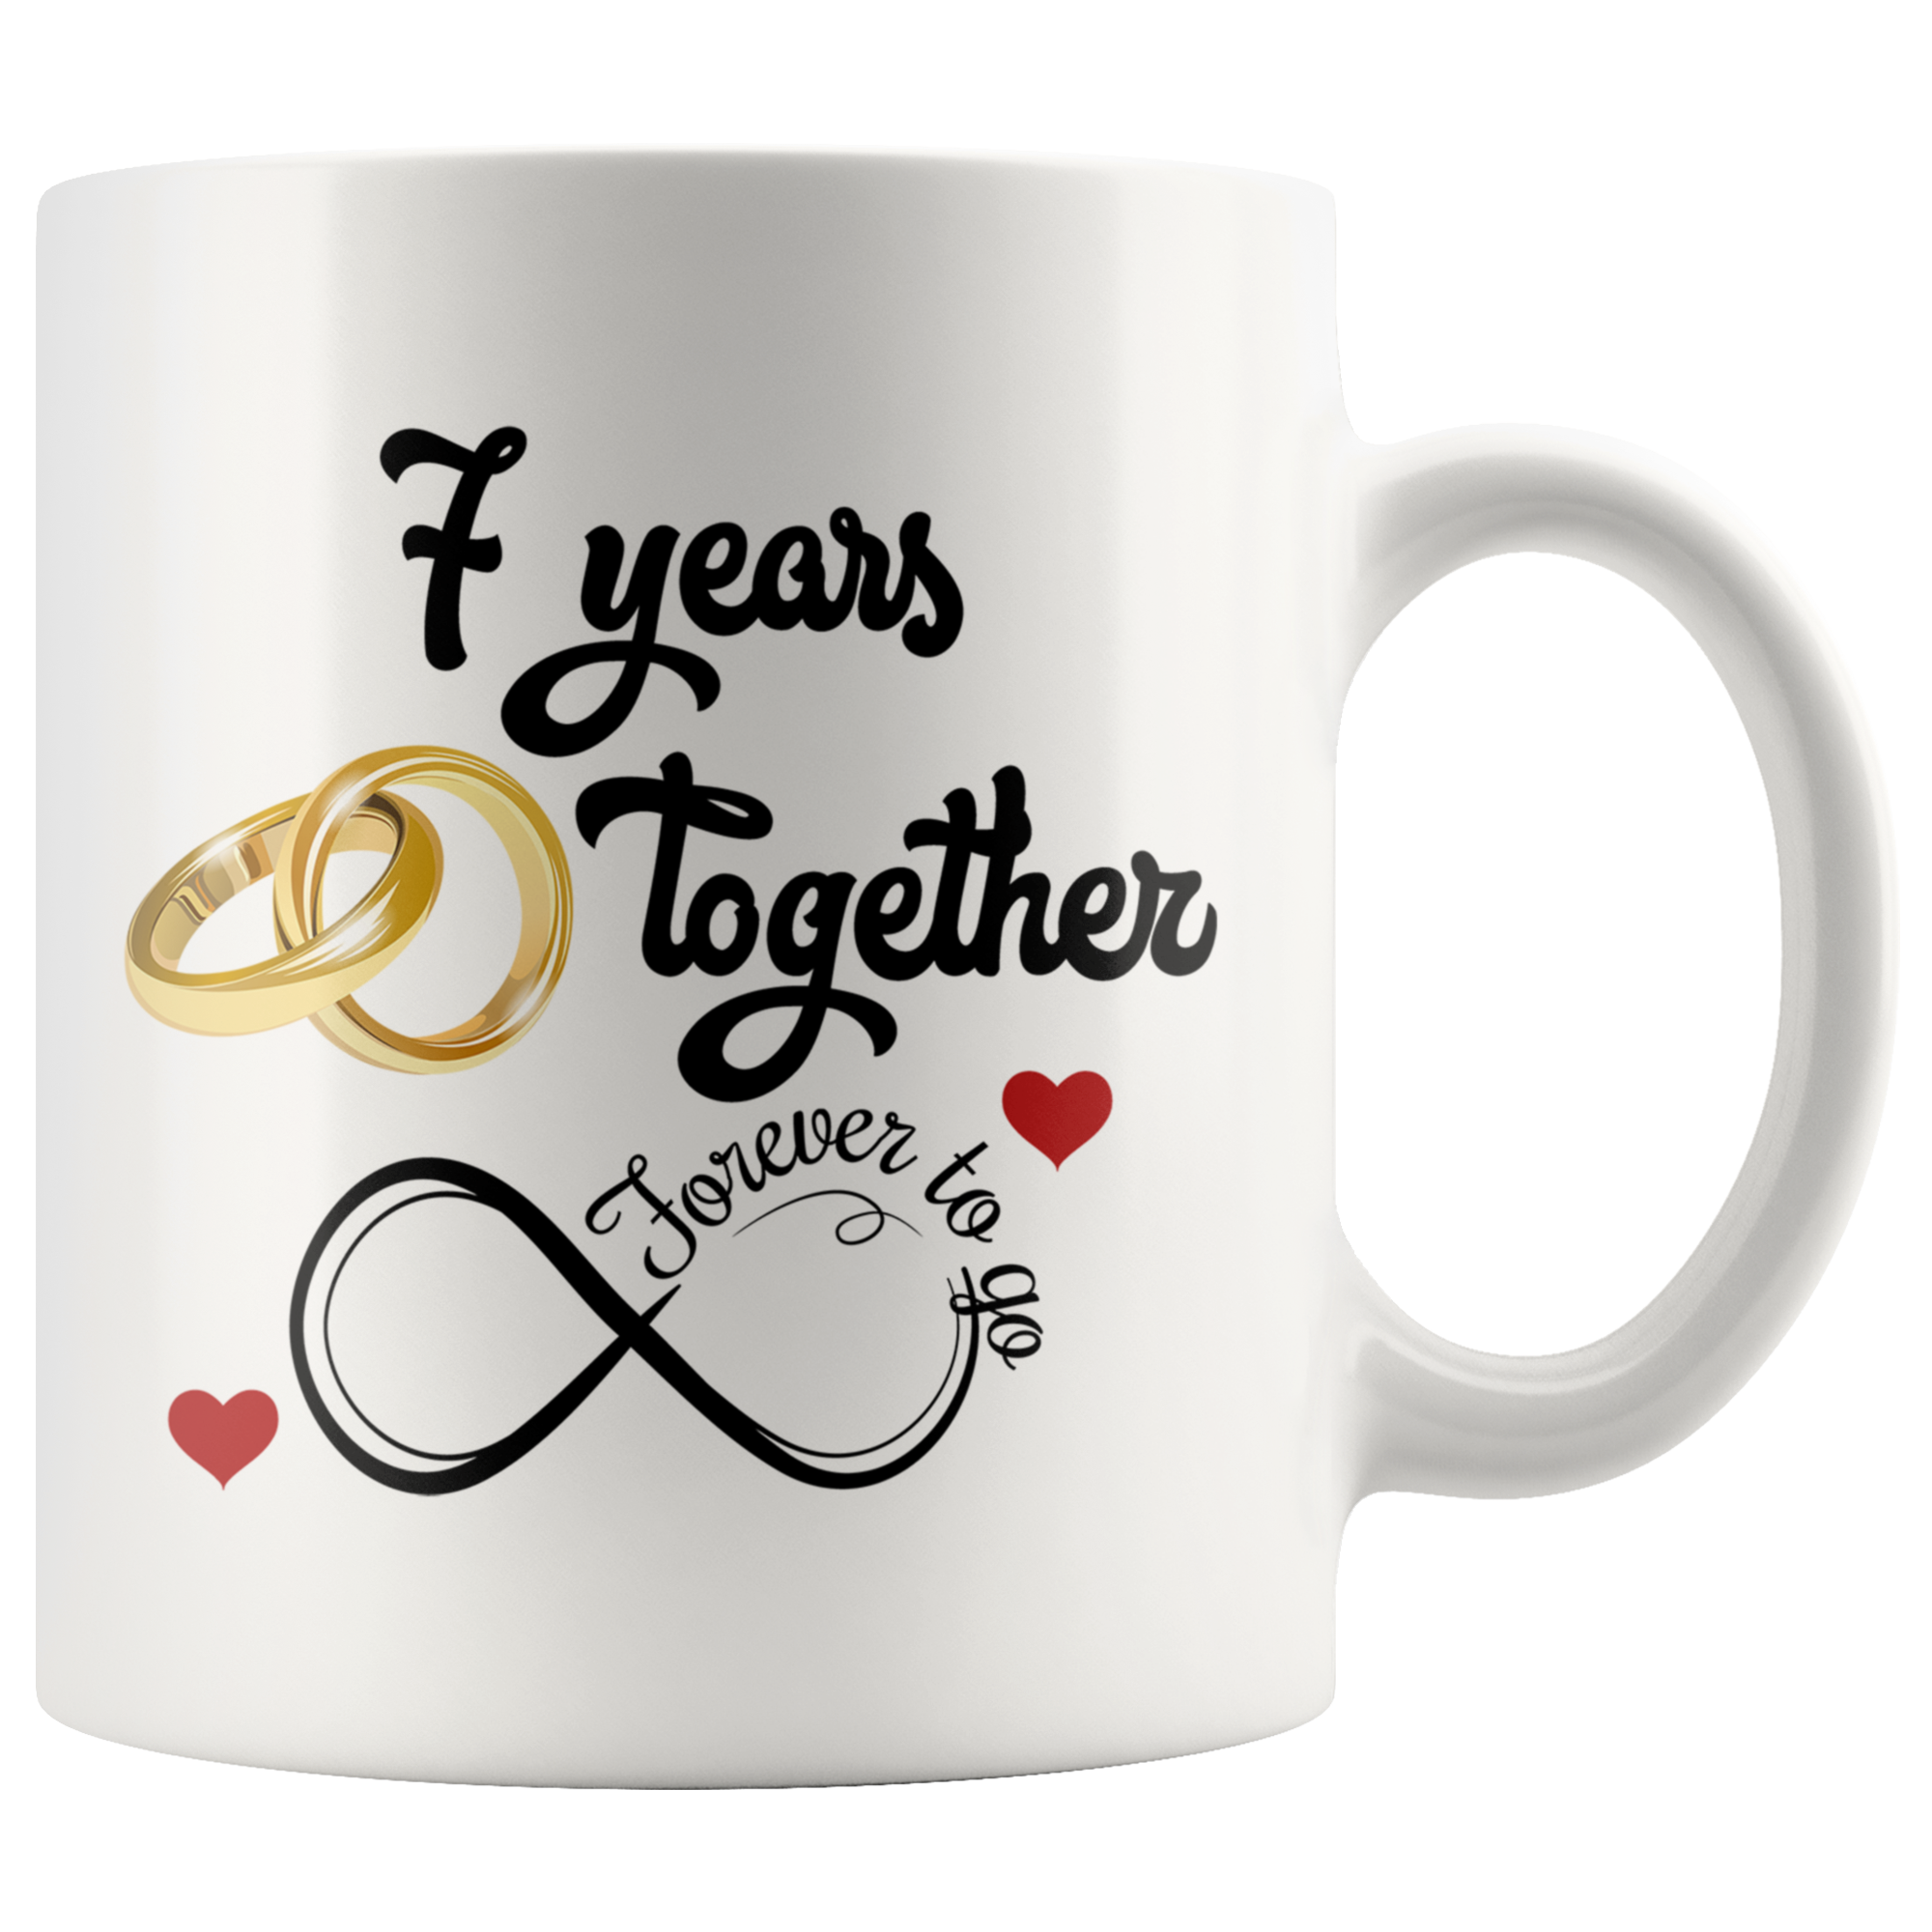 7th Wedding Anniversary.7th Wedding Anniversary Gift For Him And Her 7th Anniversary Mug For Husband Wife 7 Years Together Married 7 Years 7 Years With Her 11 Oz